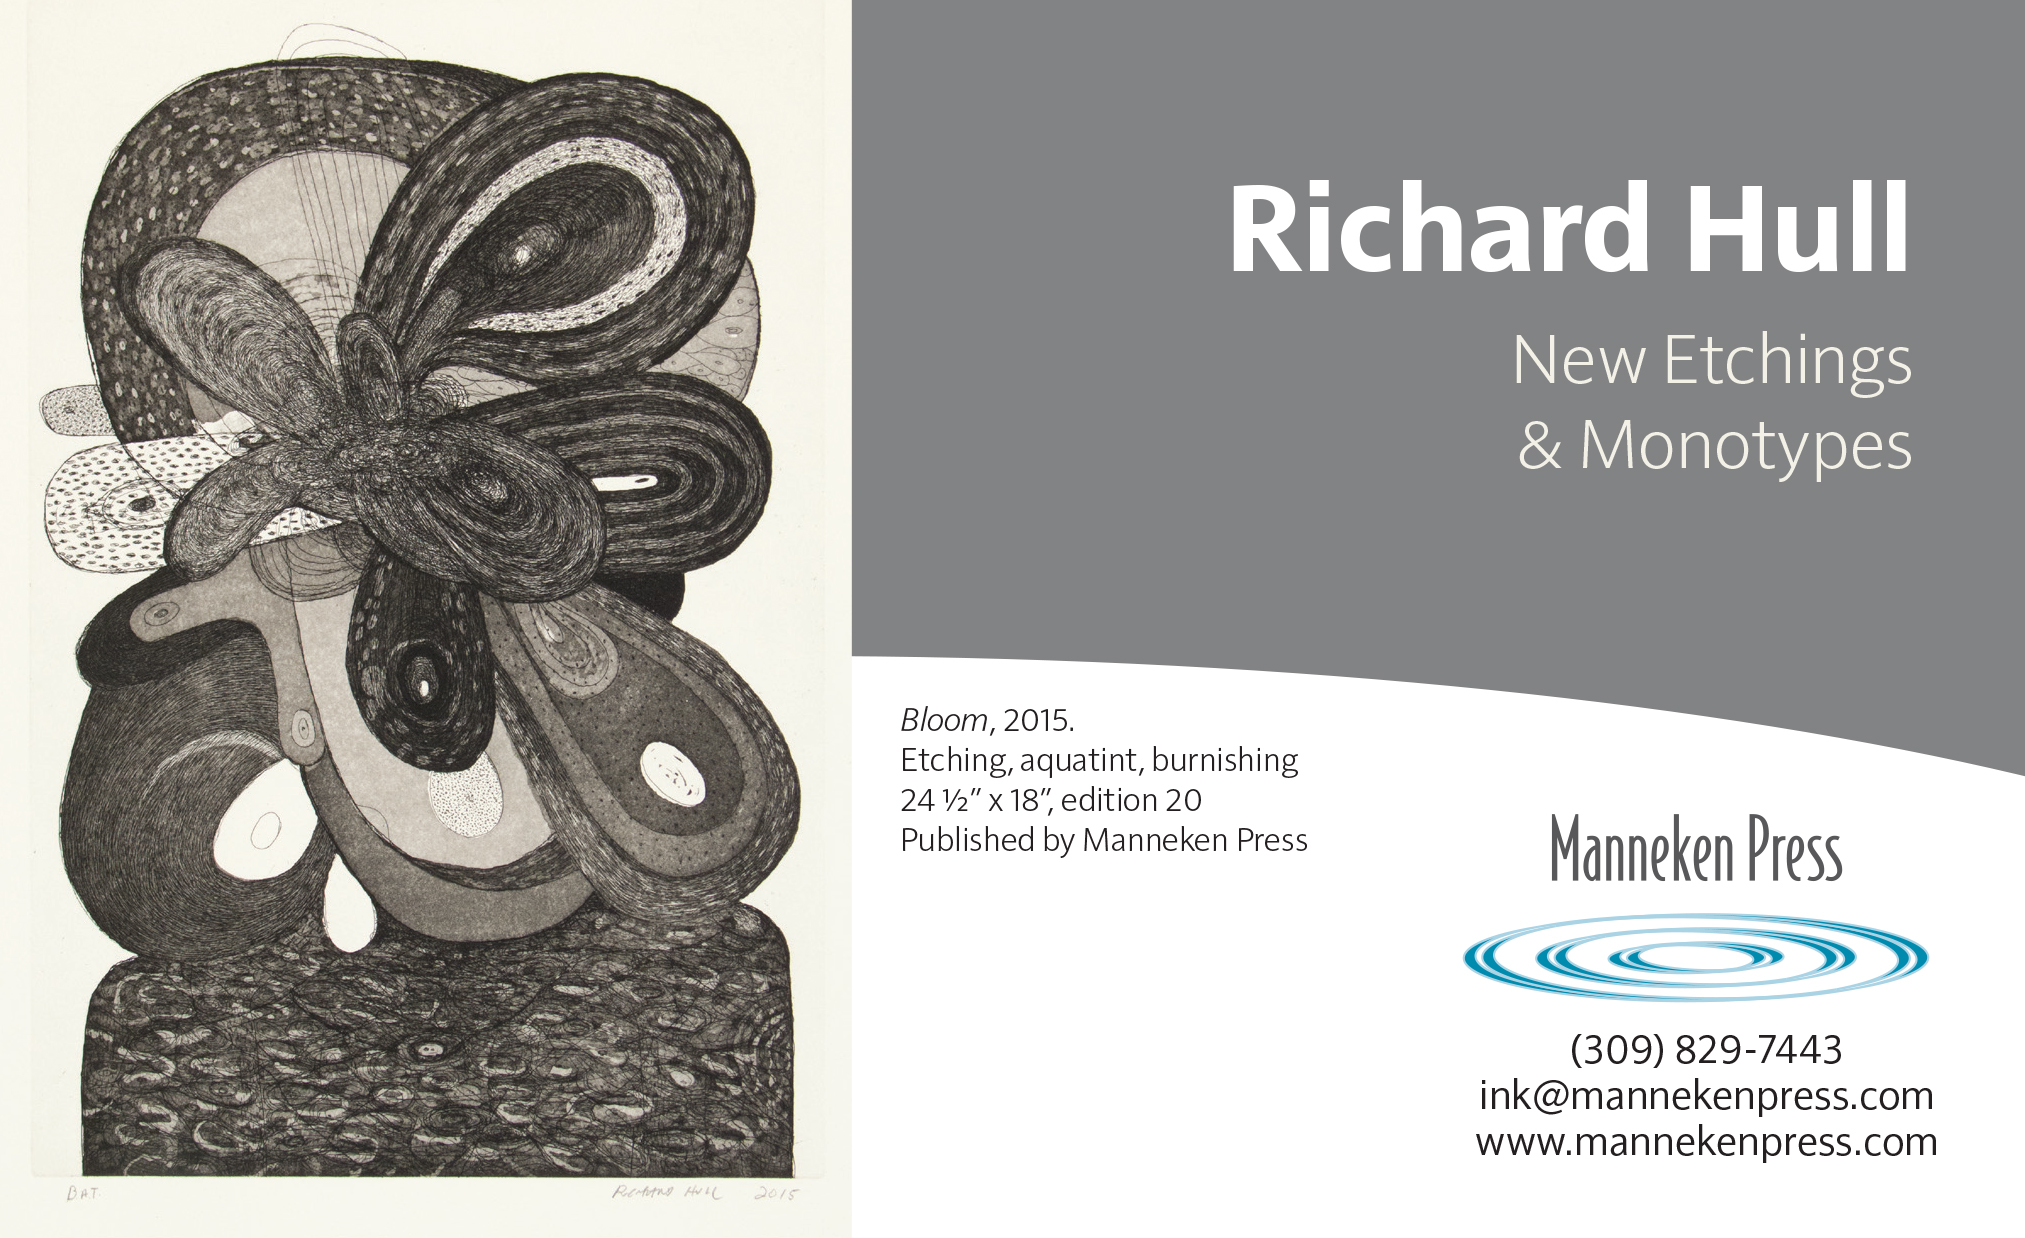 Manneken Press, Richard Hull, etchings, monotypes, new release